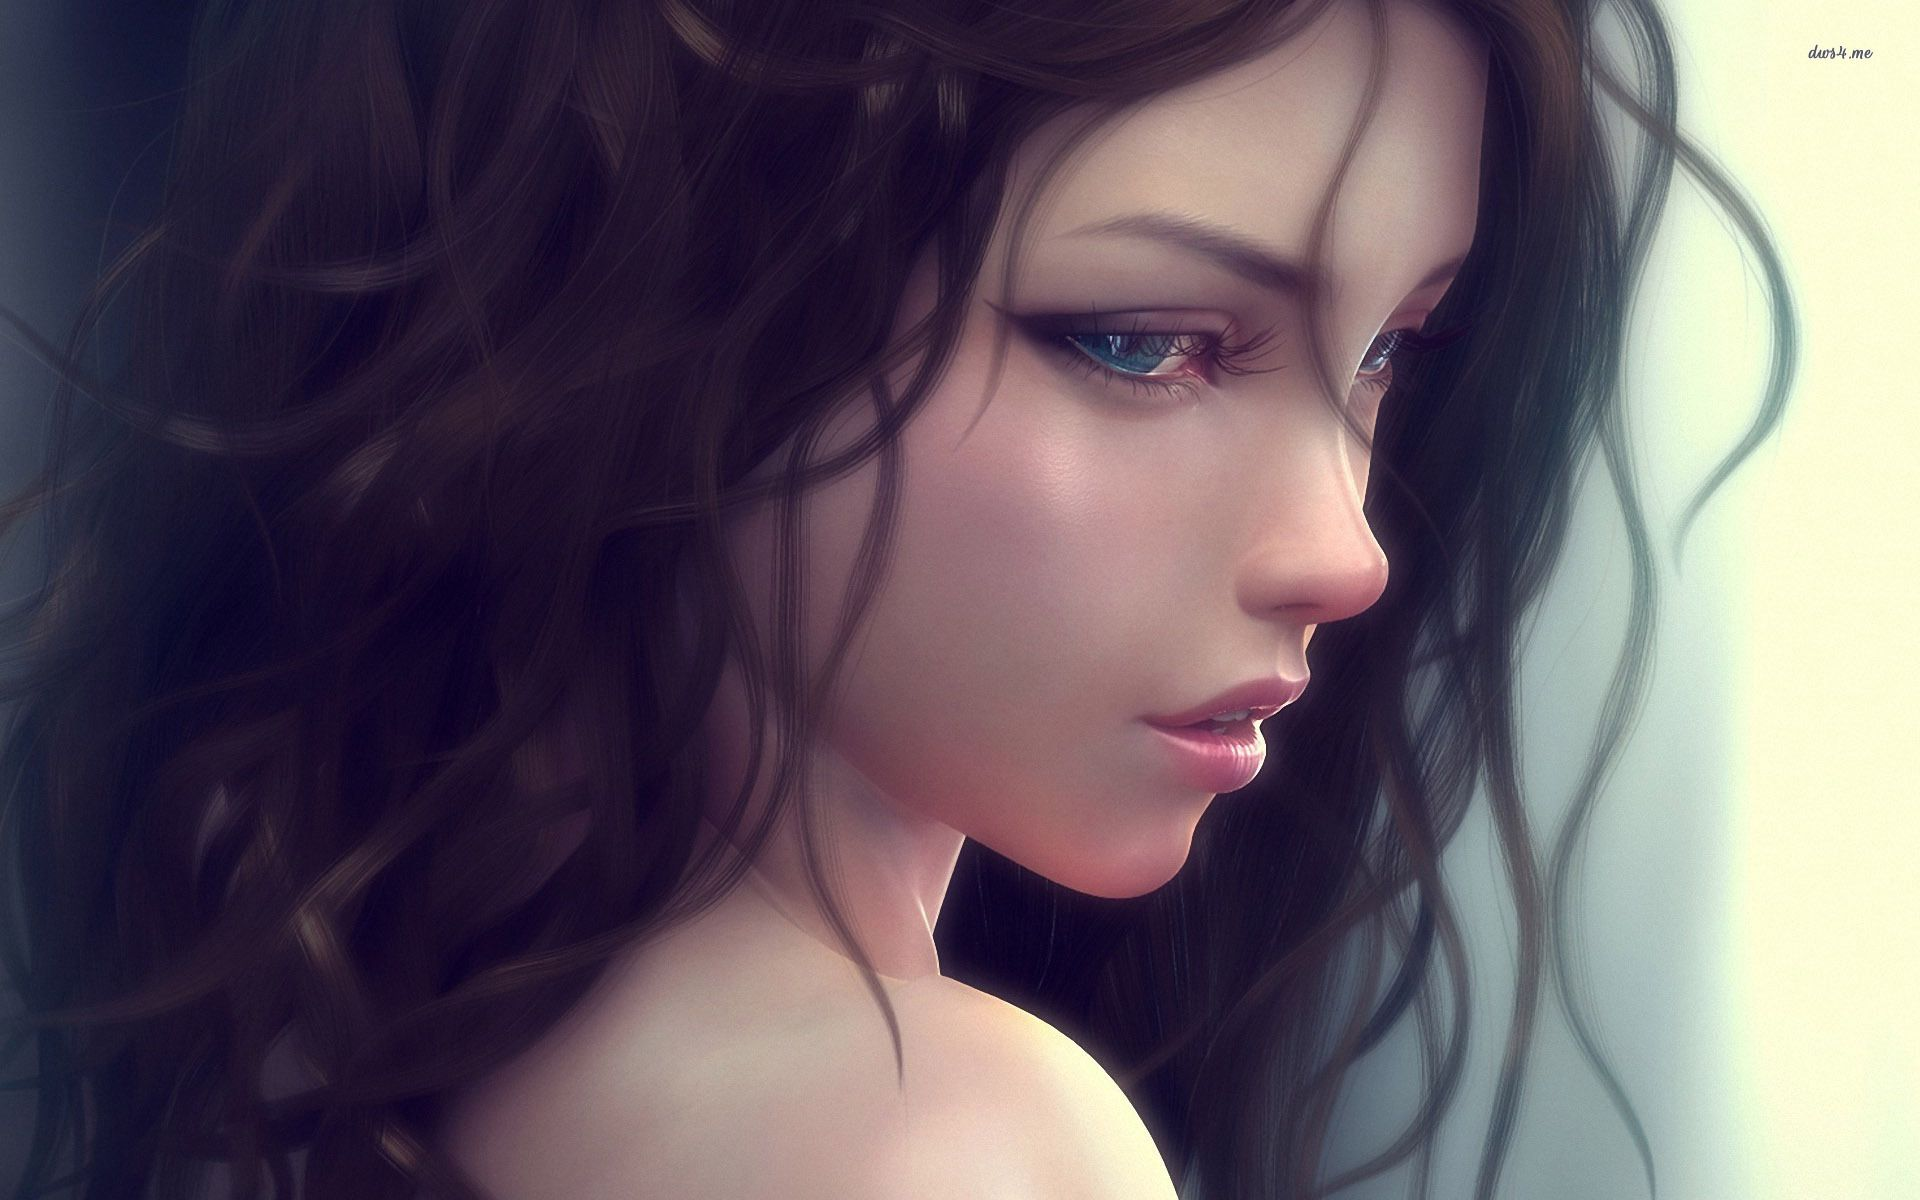 Sad girl pic find best latest sad girl pic in hd for your pc sad girl fantasy hd desktop wallpaper woman wallpaper fantasy no voltagebd Images